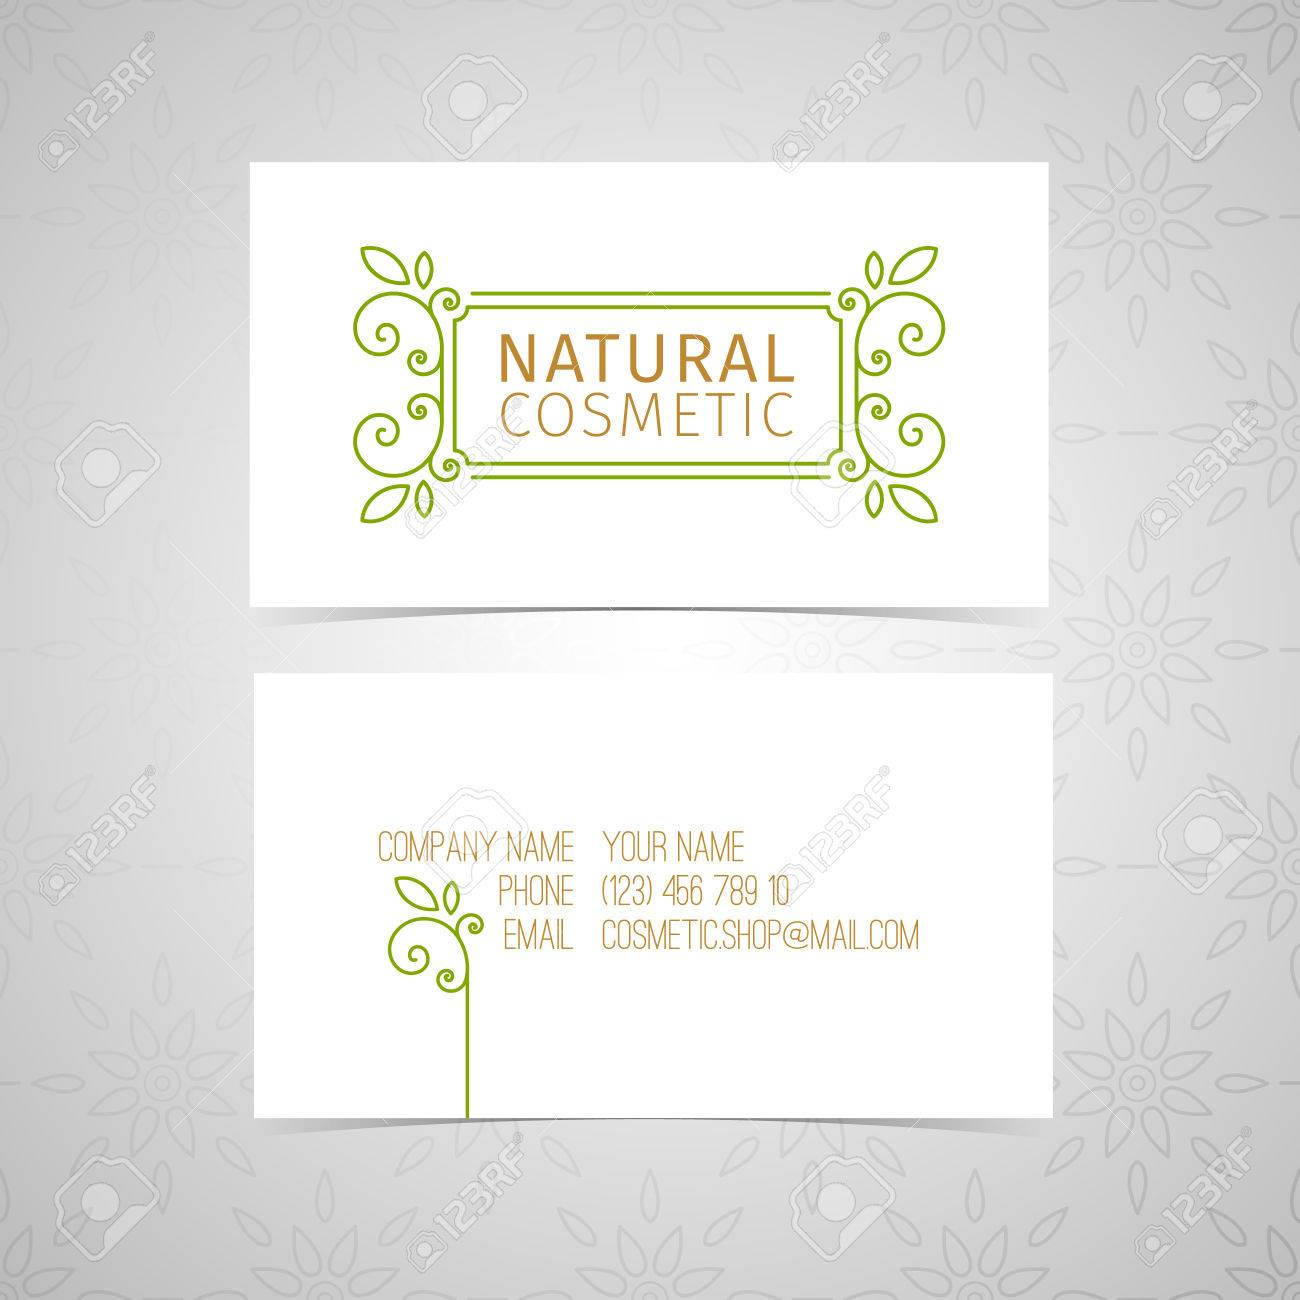 Template Design Of Natural Cosmetics Business Card. Linear Decor ...